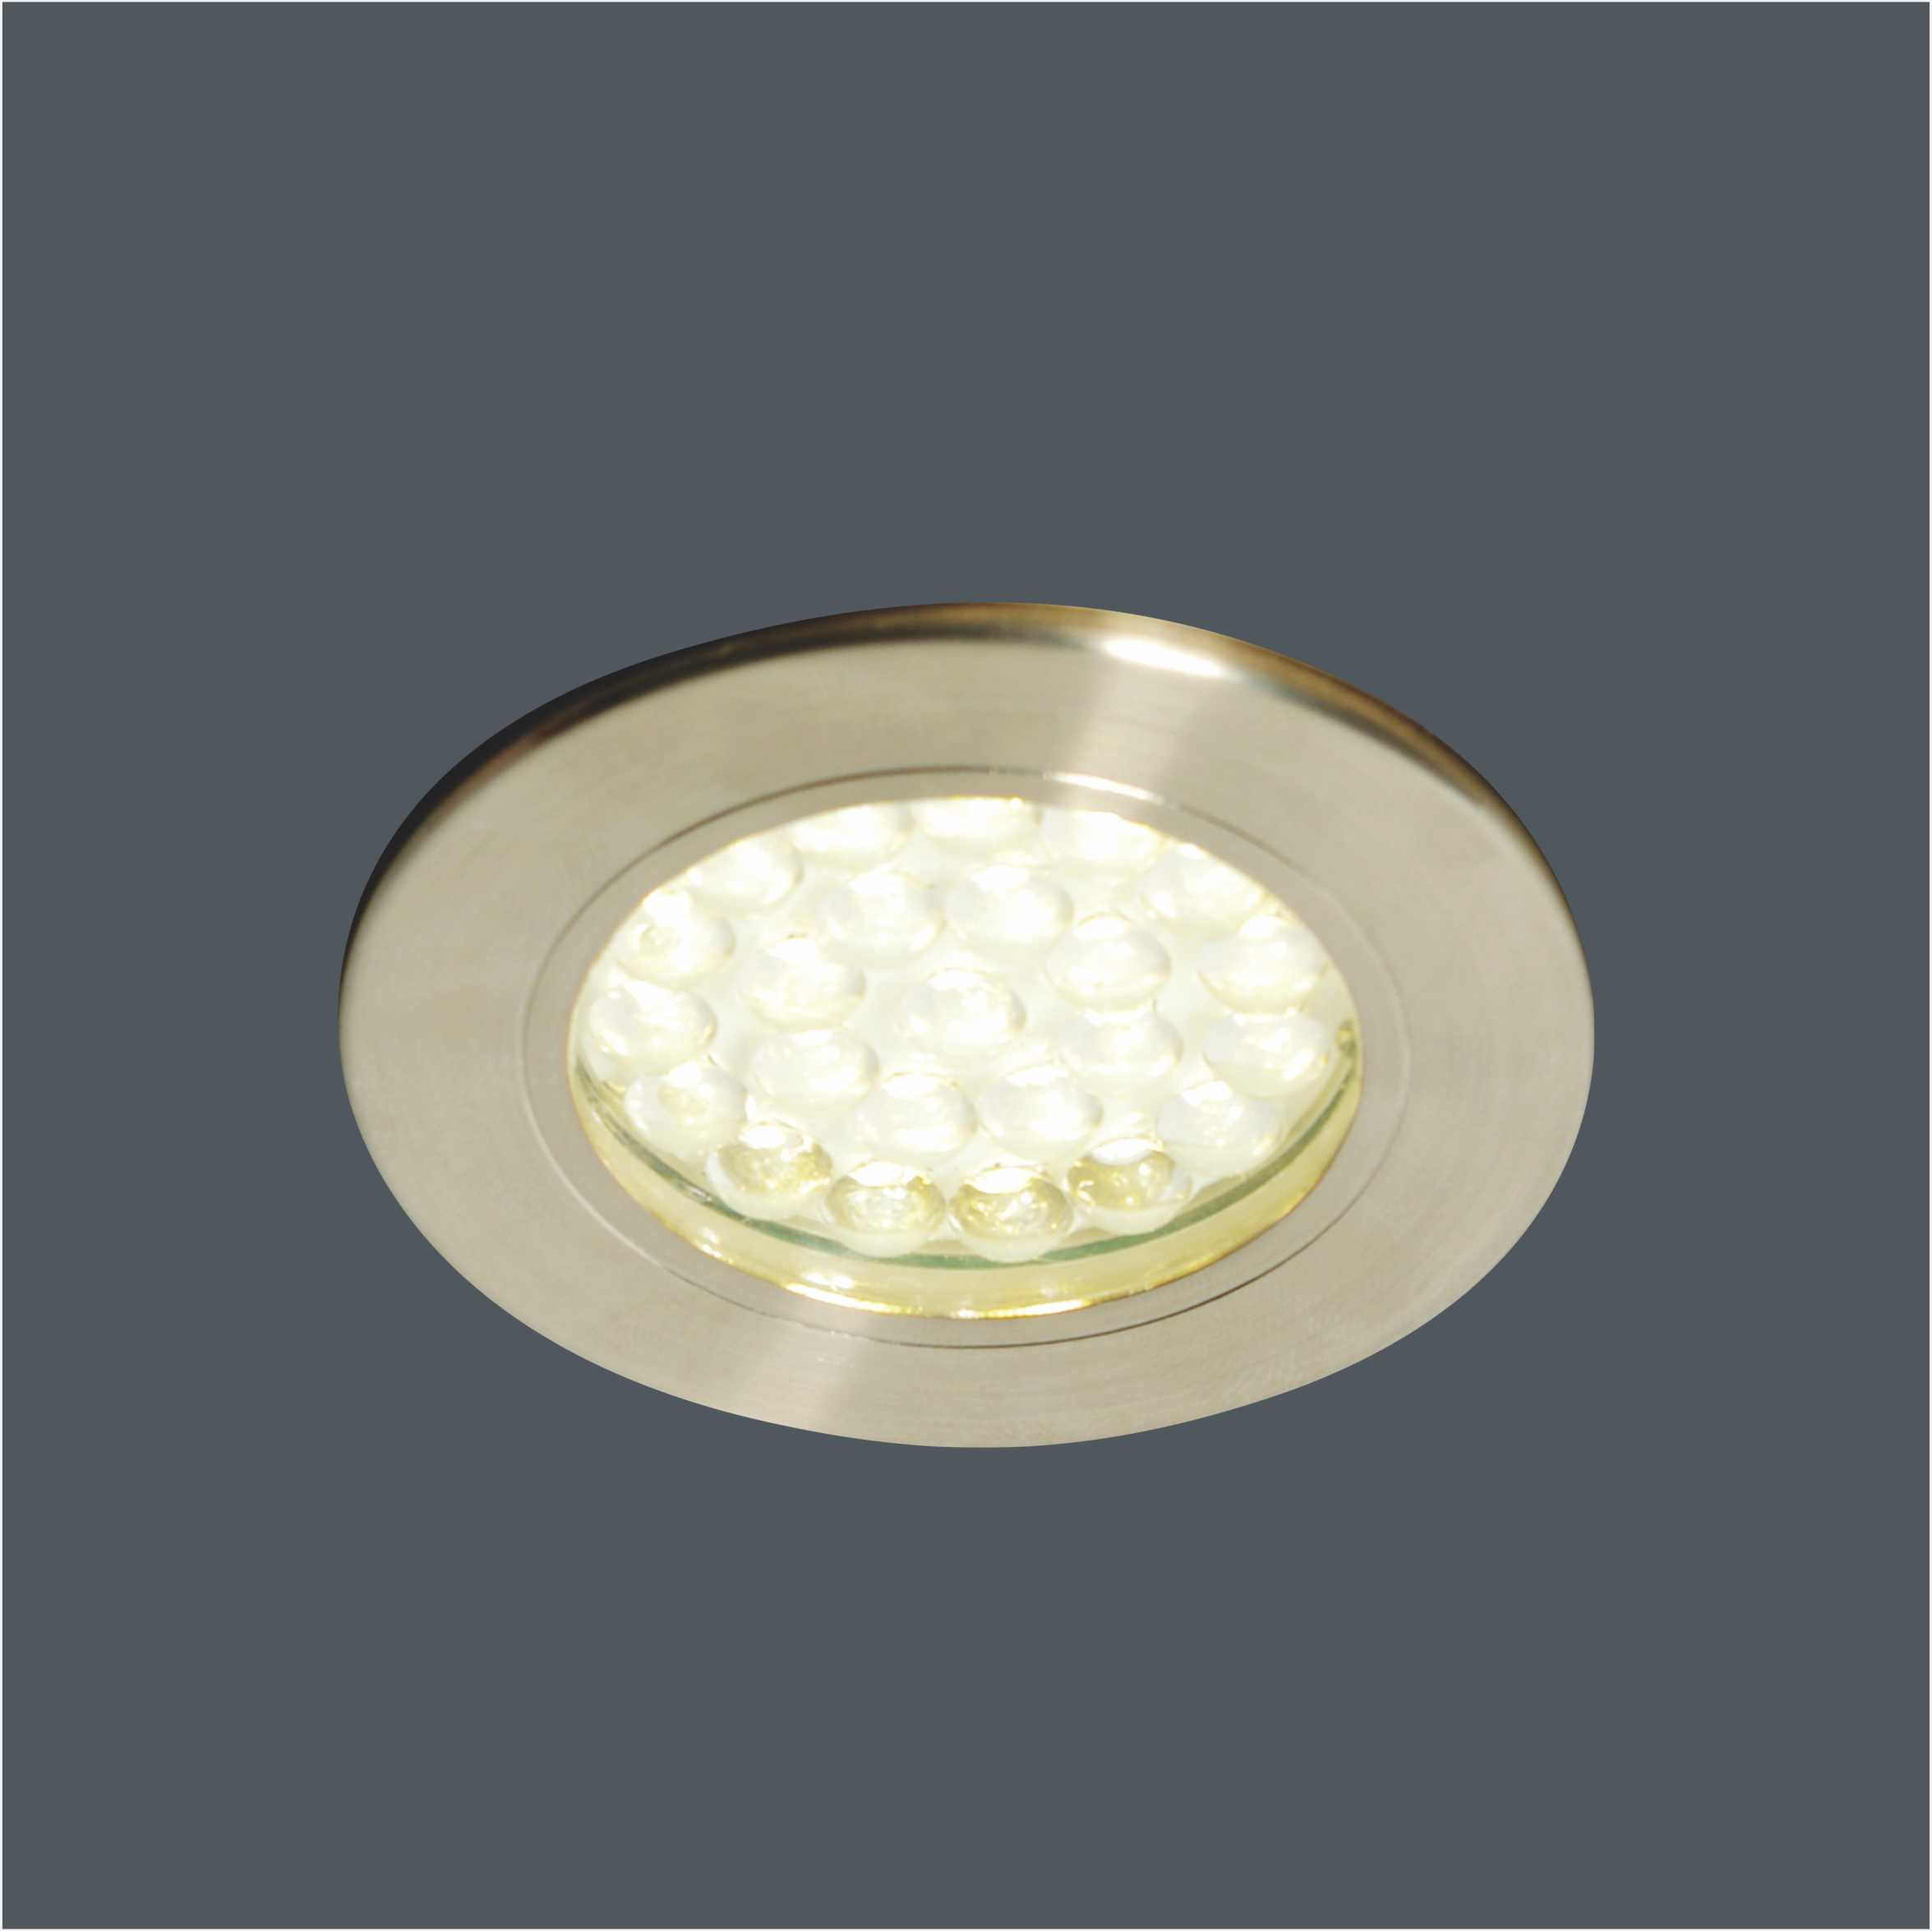 IP44 Recessed Round Mains Voltage 230V LED Bathroom Ceiling Down Light 6730